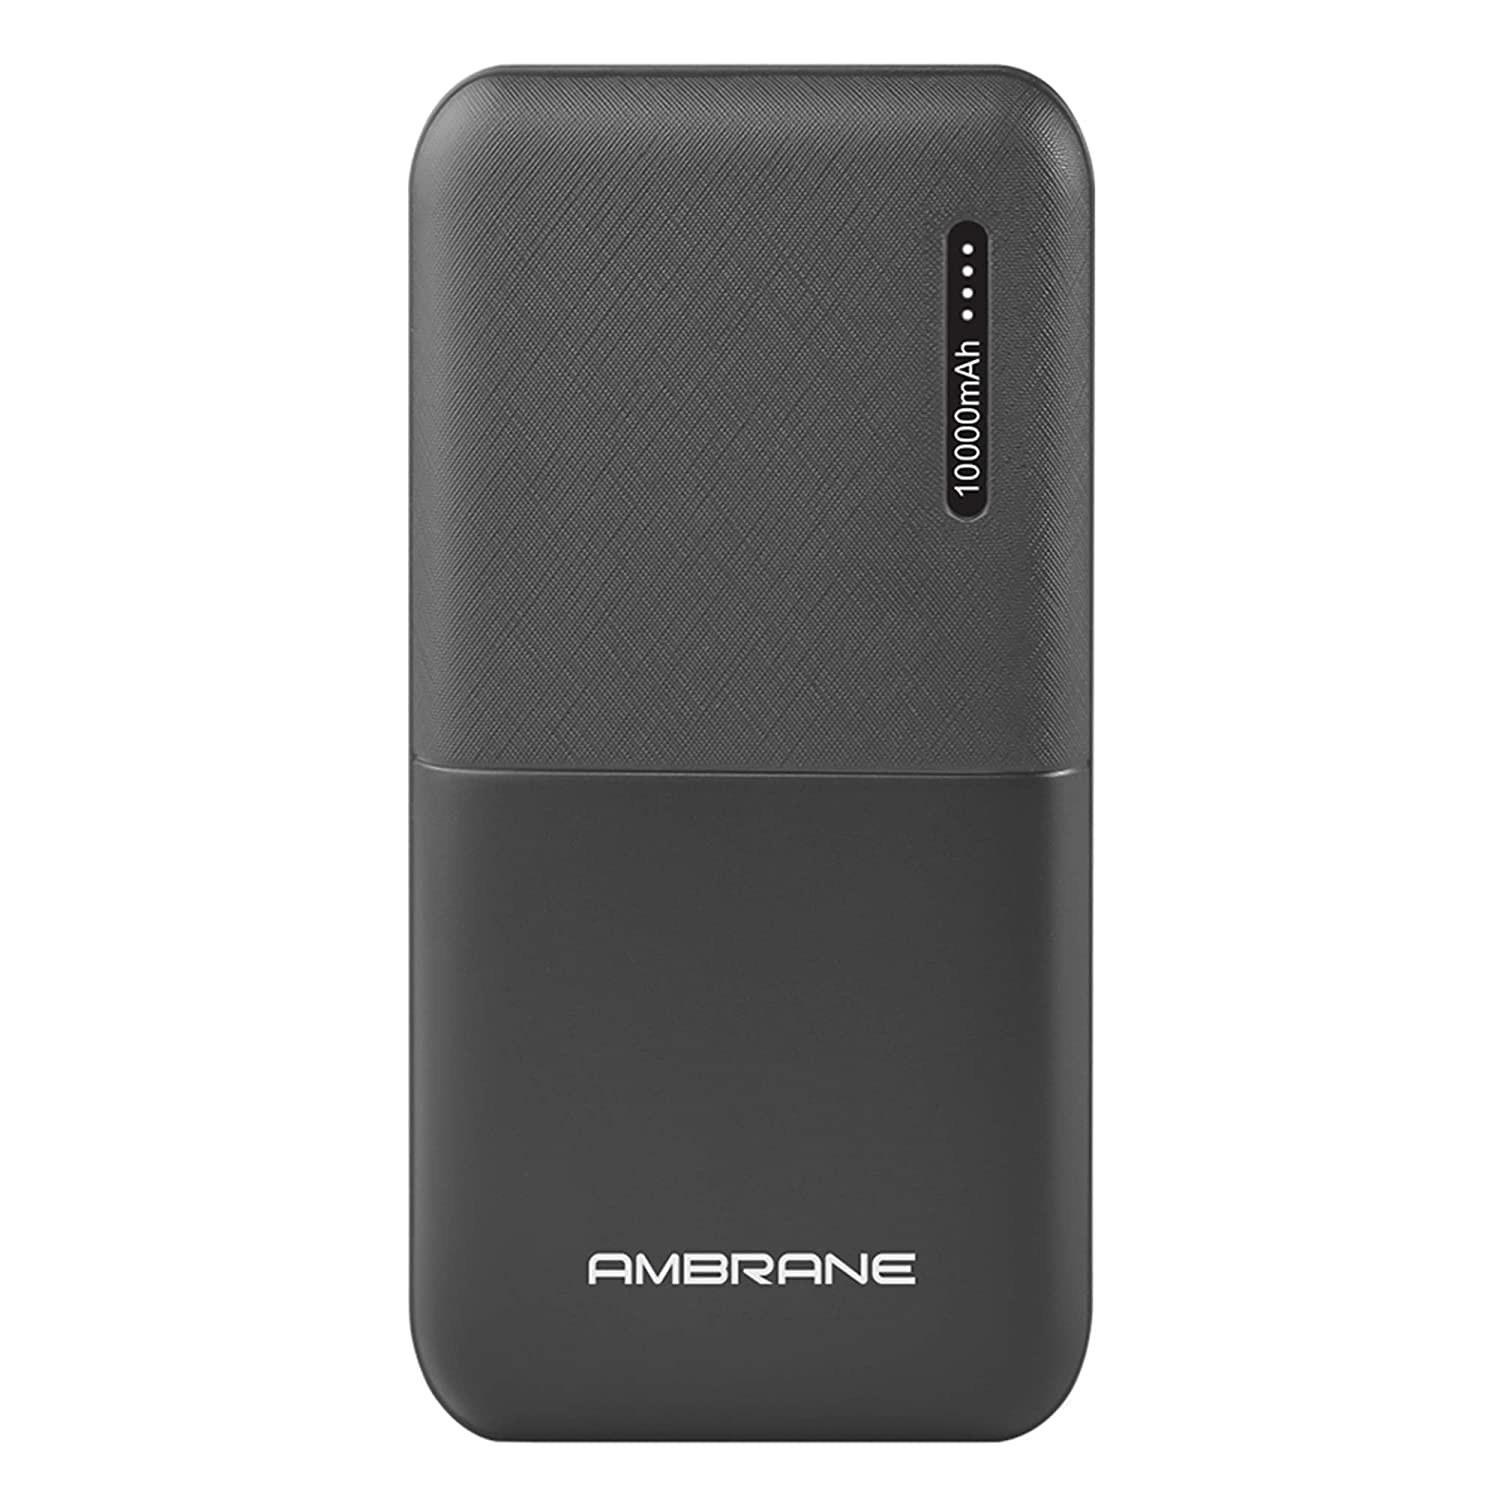 A power bank